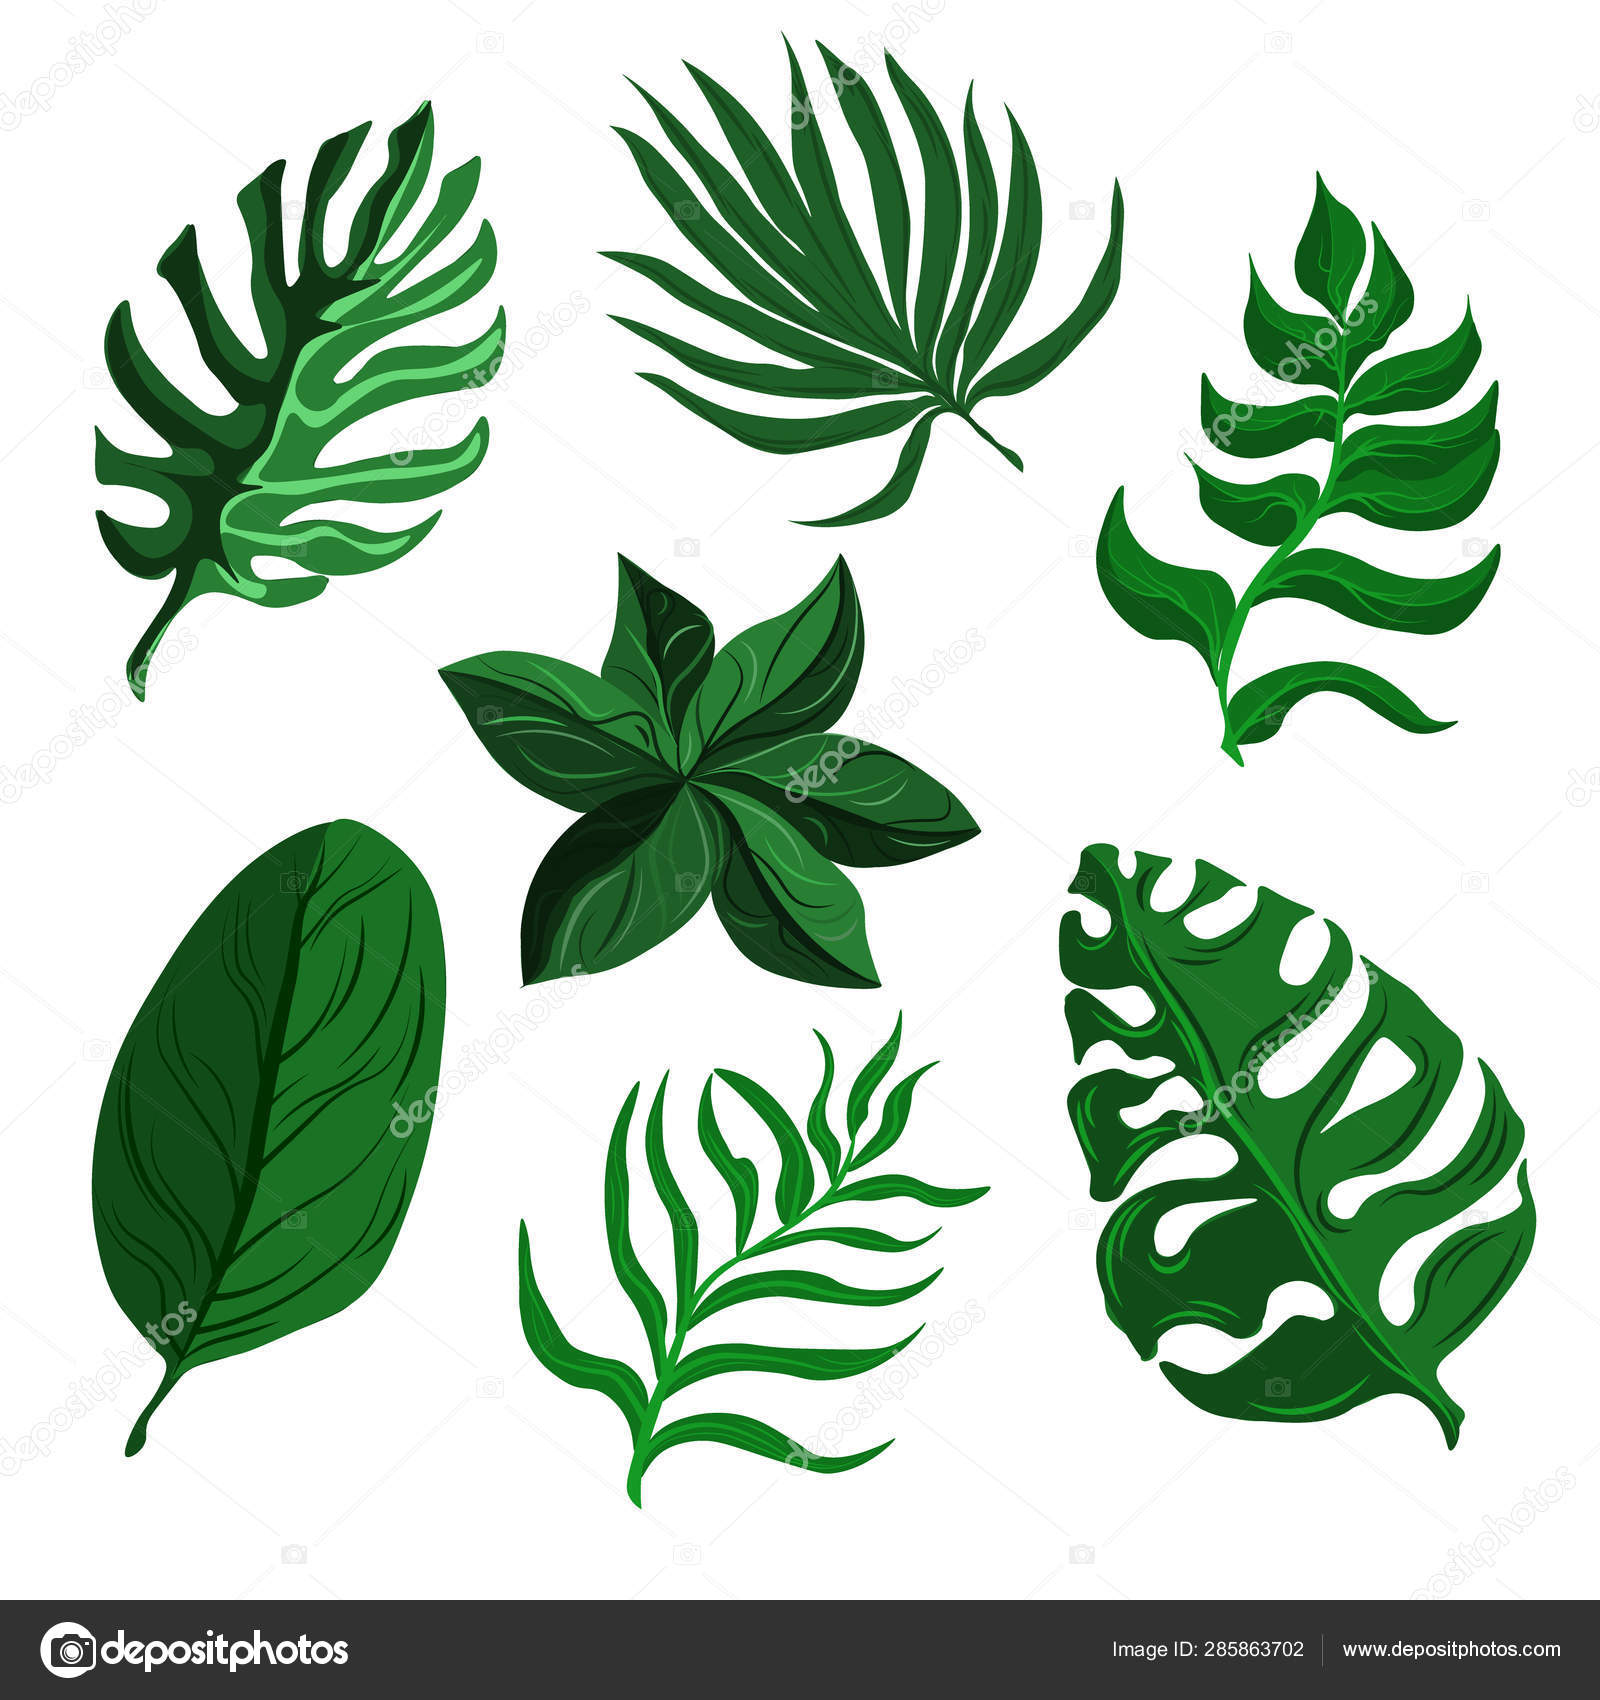 Various Shapes Green Leaves Trees Plants Elements Eco Bio Logos Stock Vector C Pavlicheva Julia Gmail Com 285863702